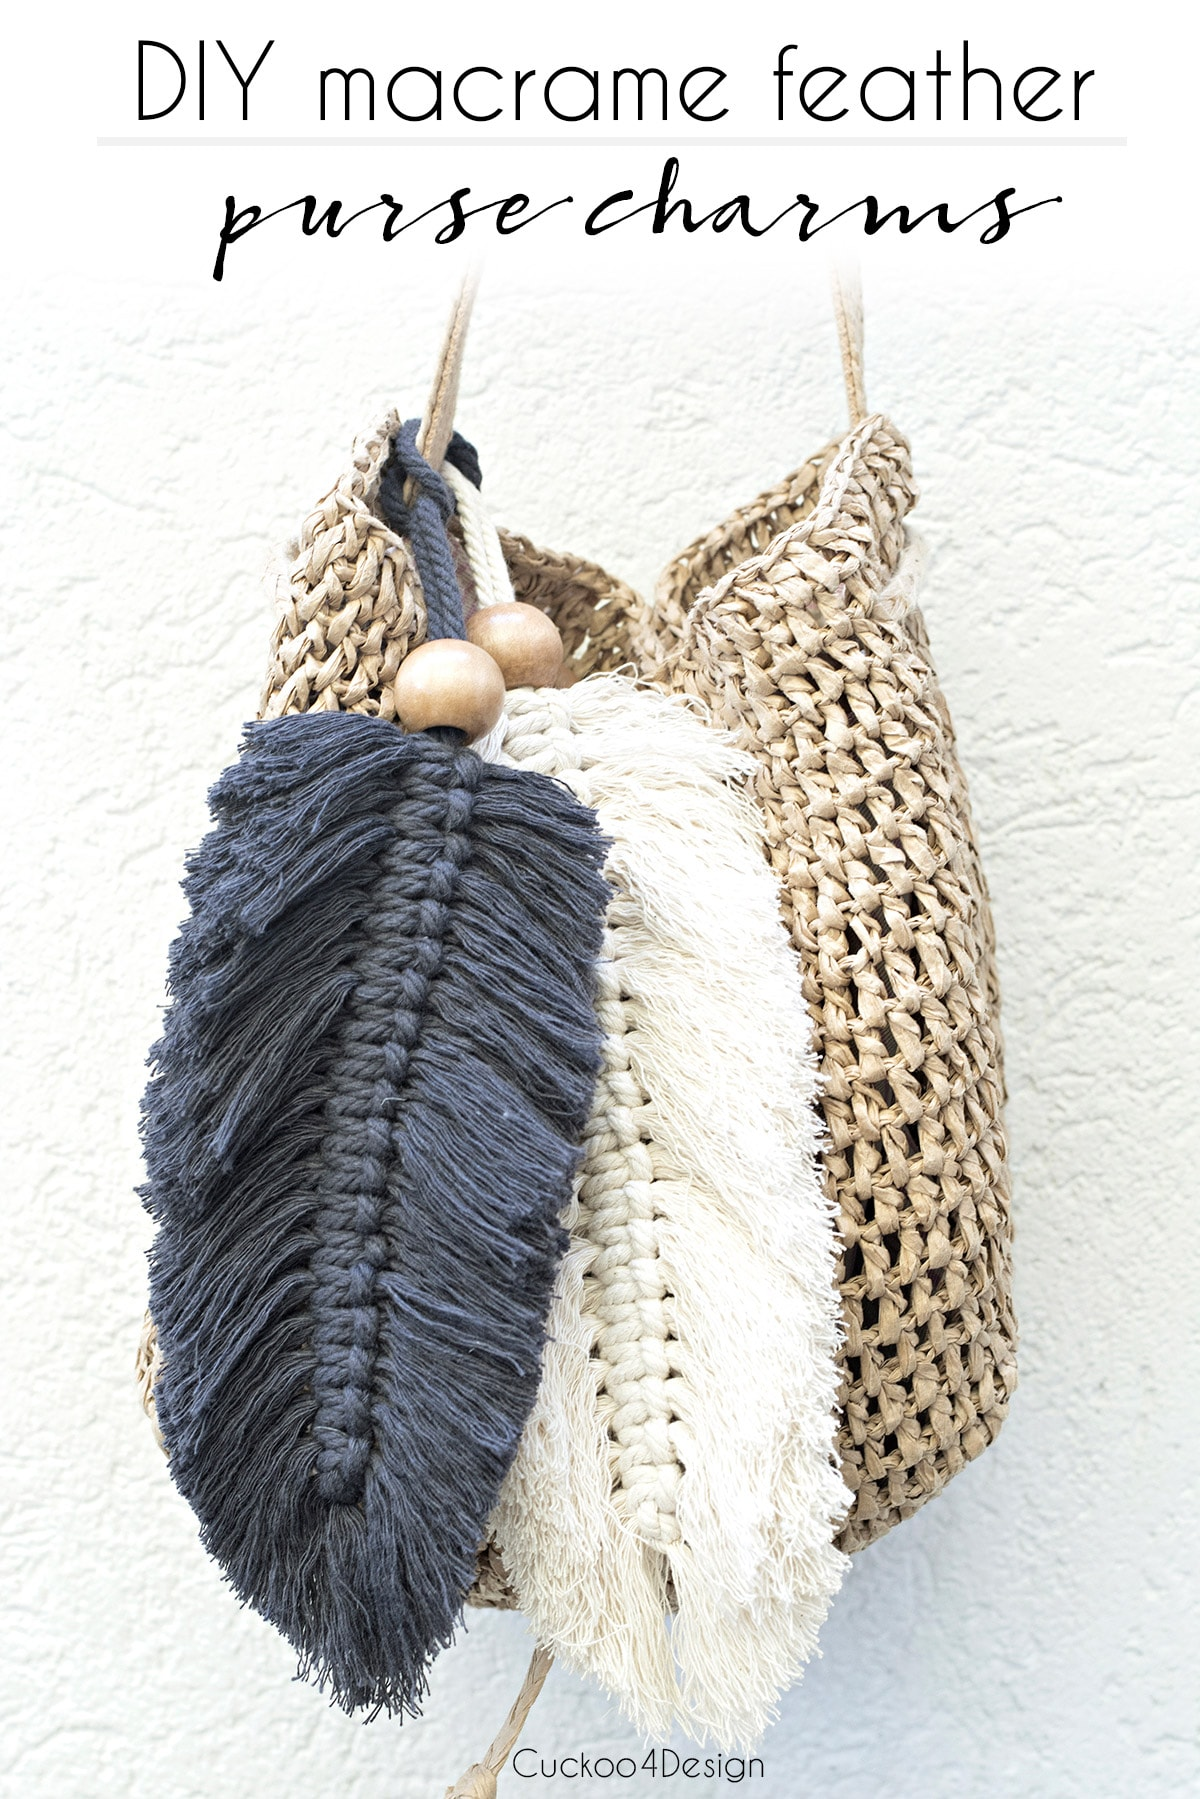 How to make large beaded macrame feather purse charms